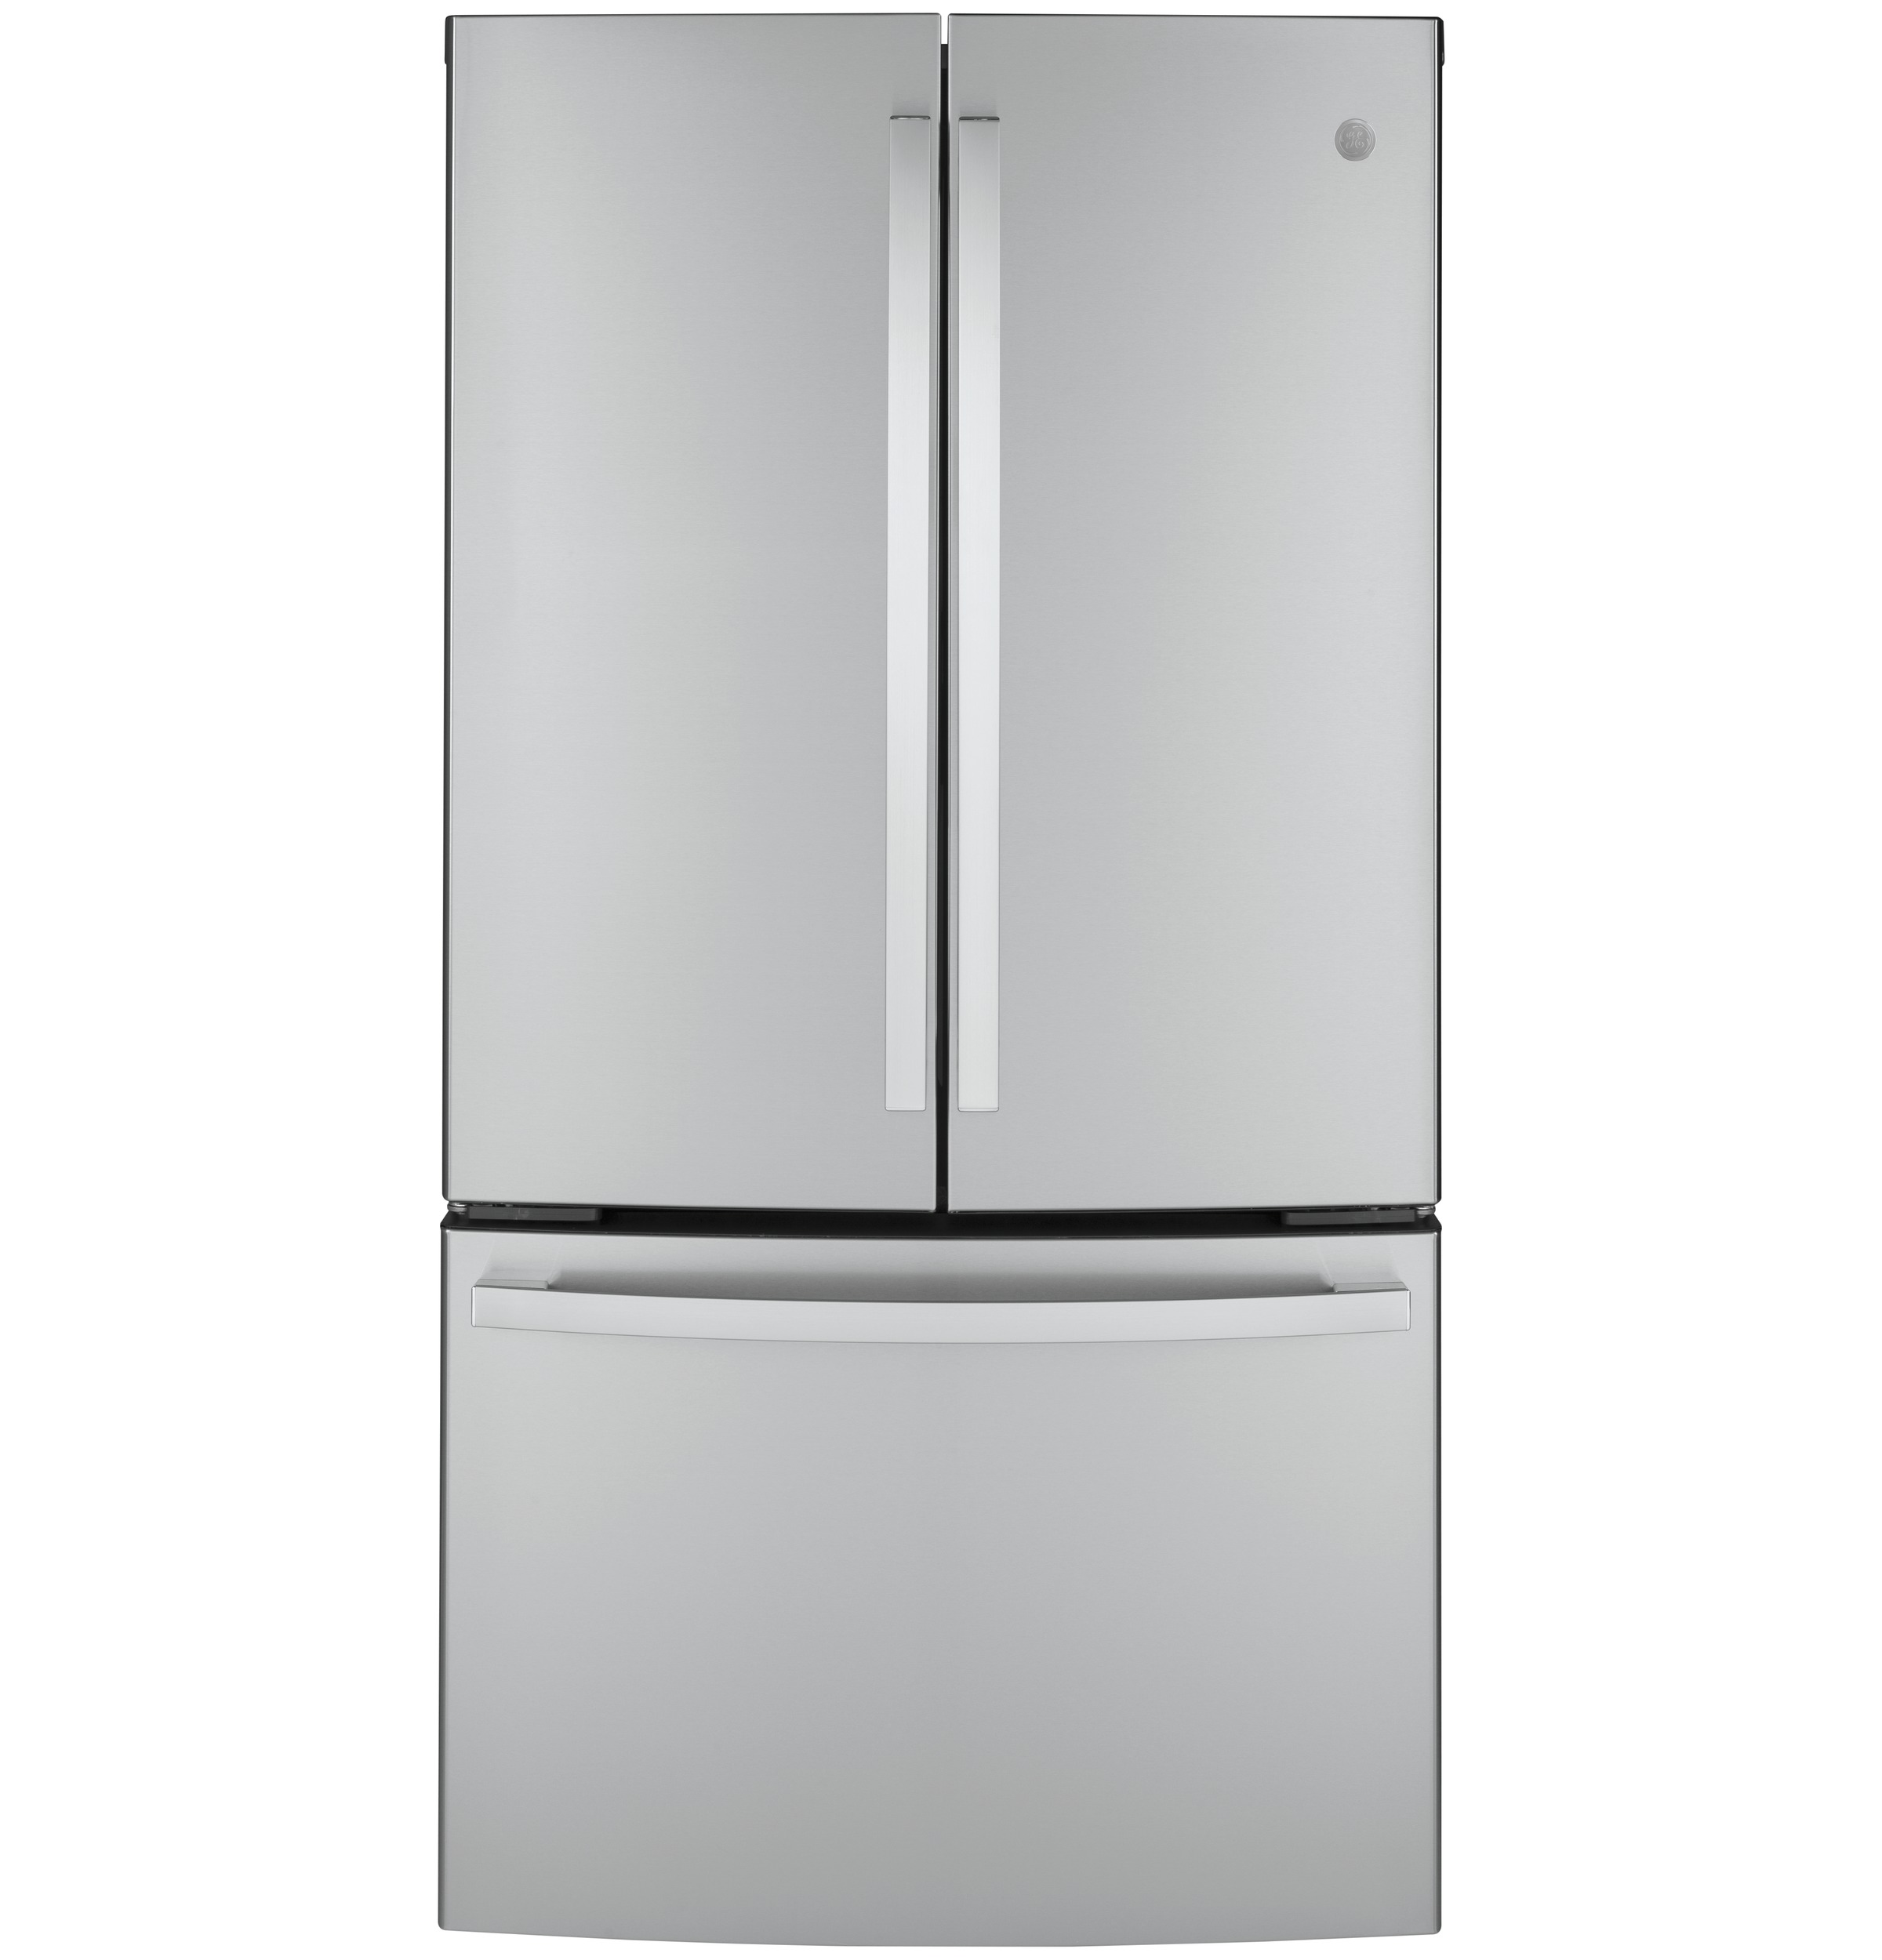 GE GE® ENERGY STAR® 23.1 Cu. Ft. Counter-Depth French-Door Refrigerator